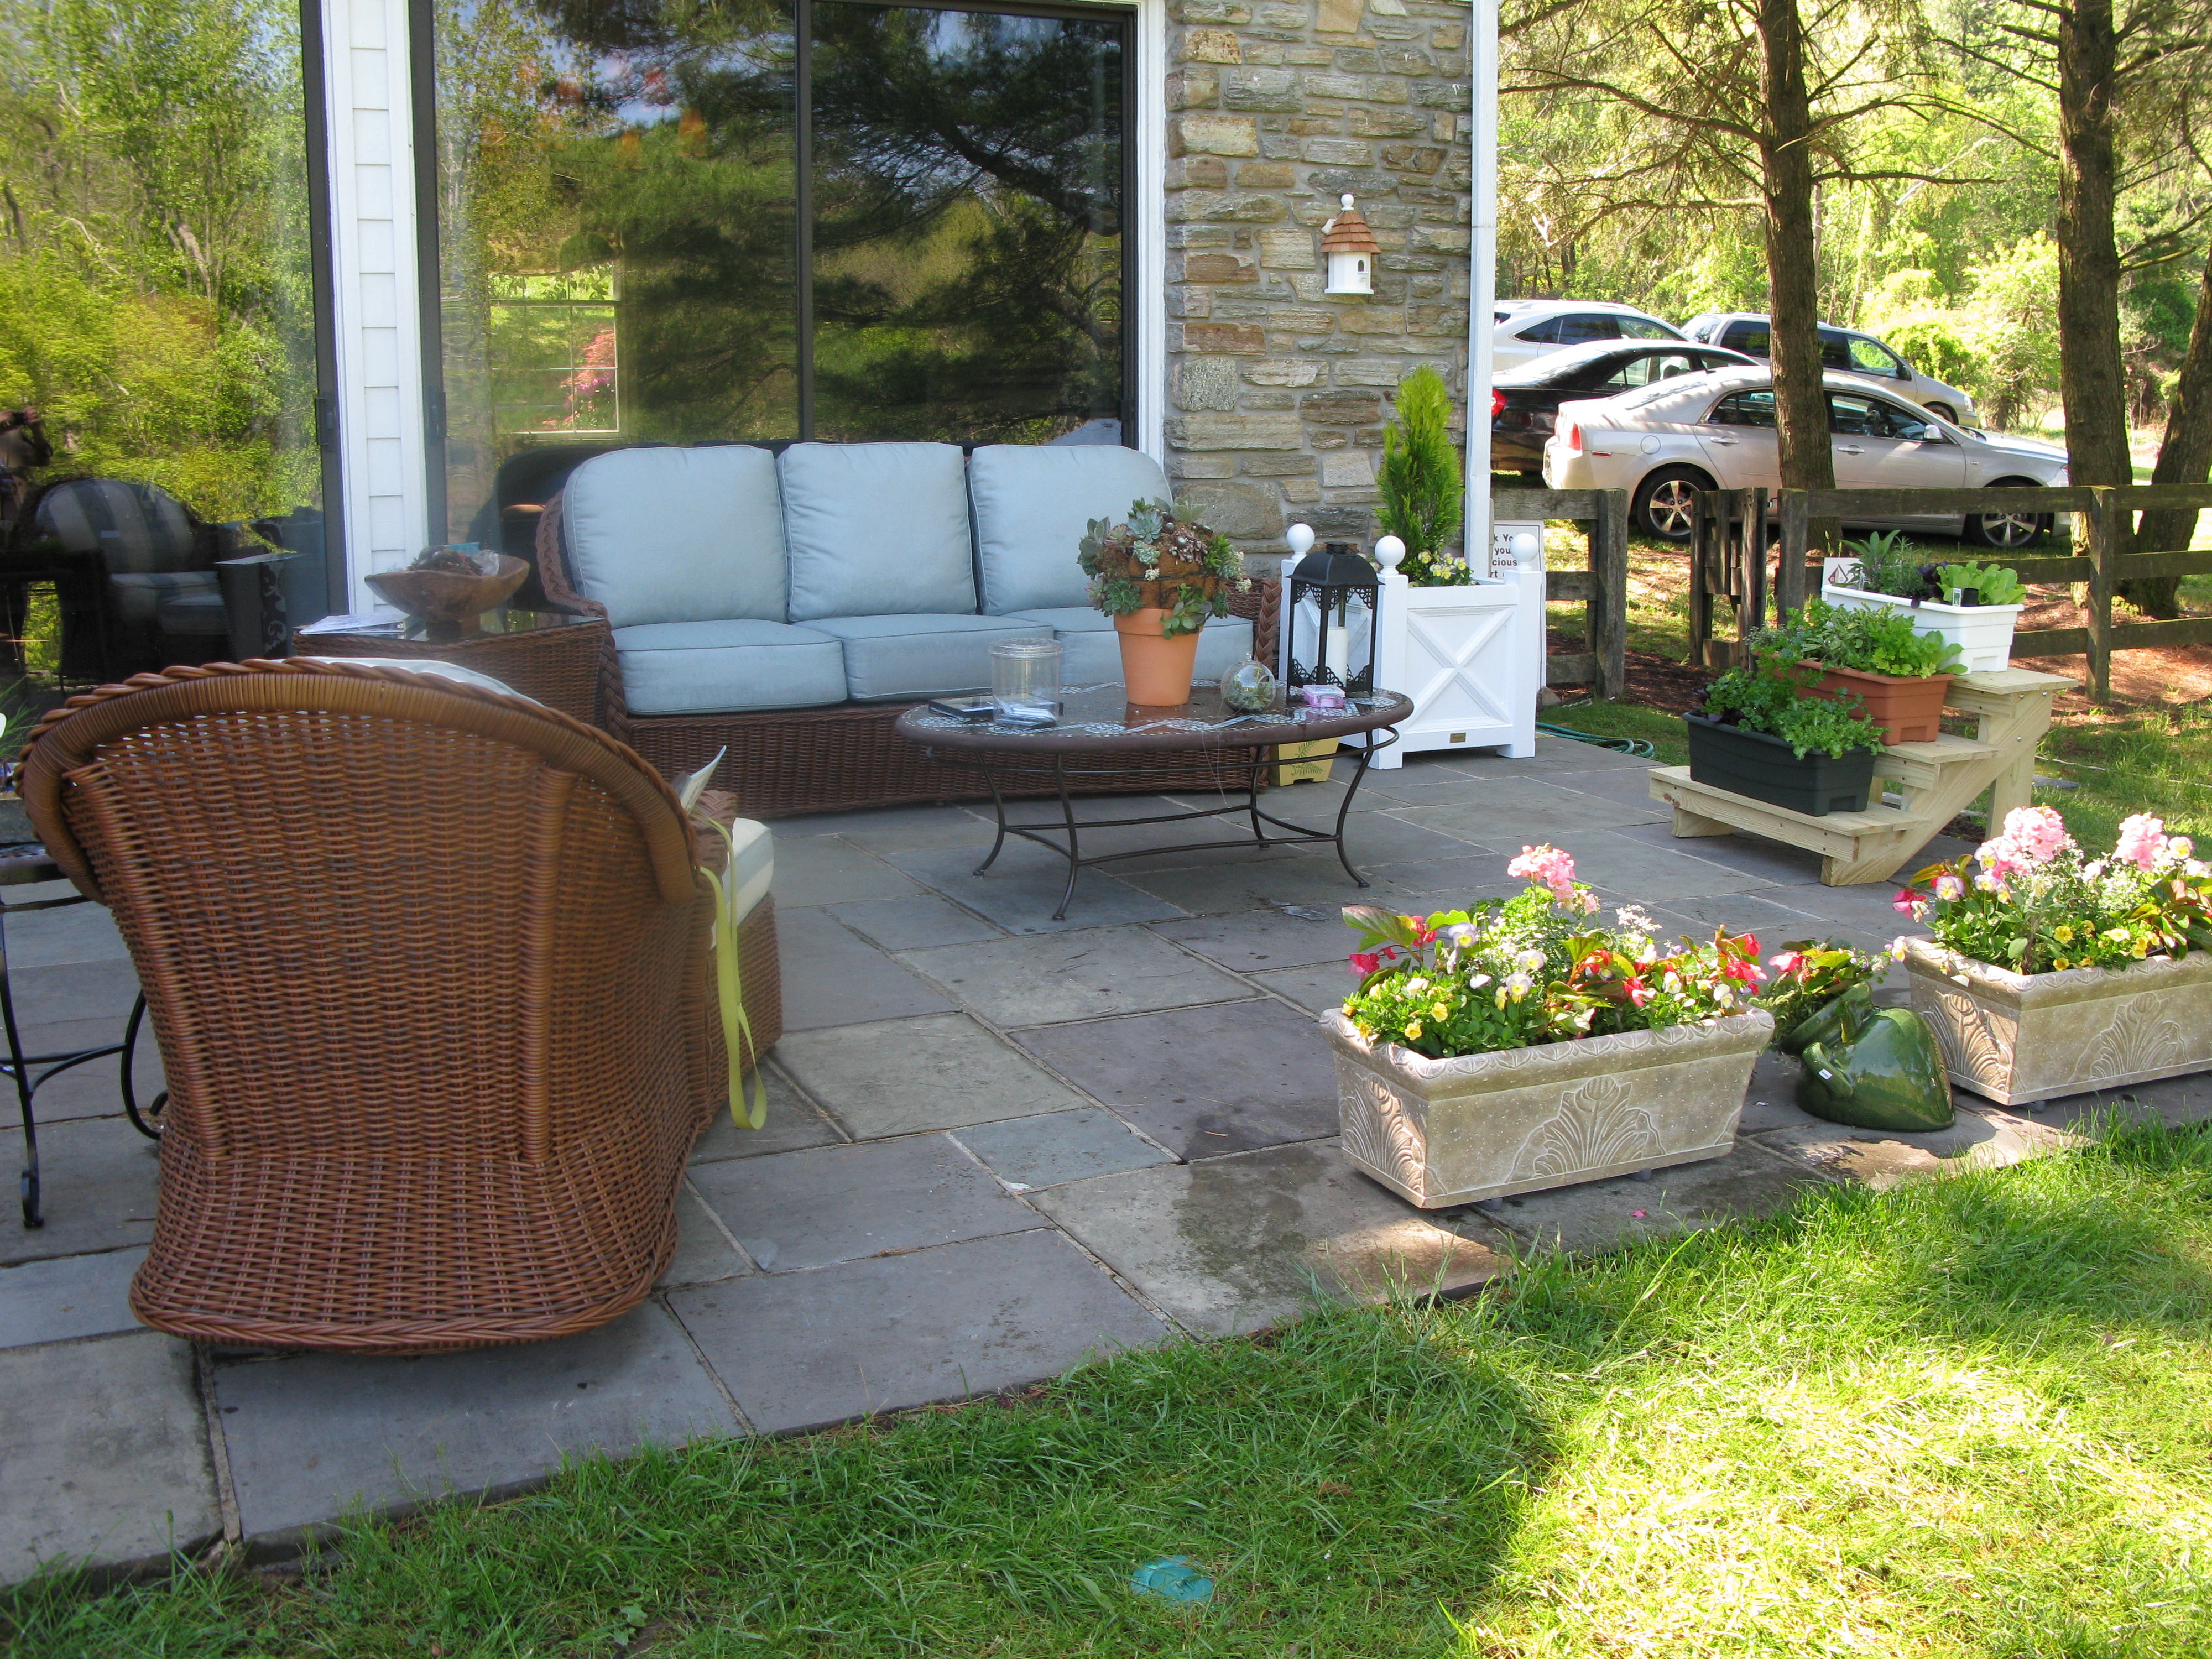 Transforming A Patio U2013 An Outdoor Living Space That Looks Like Home U2013 The  Garden Diaries